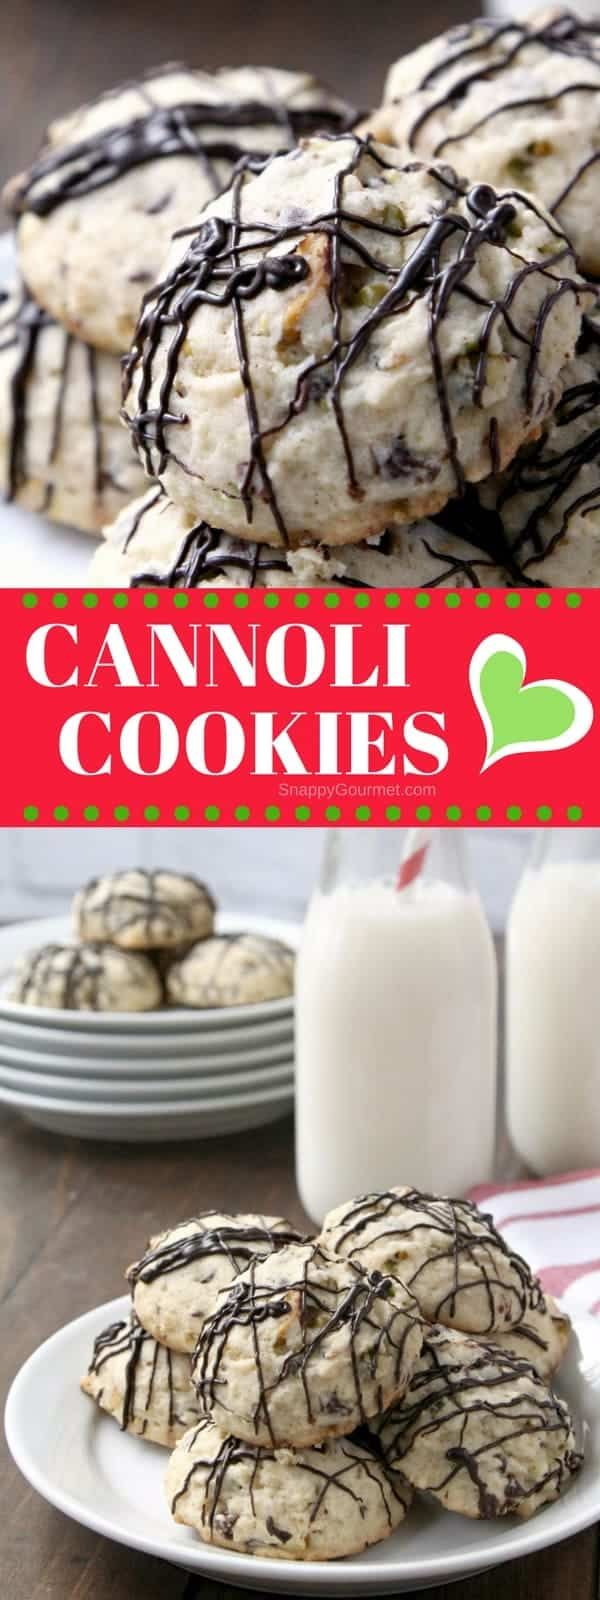 Cannoli Cookies Easy Italian Christmas Cookie With Pistachios Chocolate Ricotta And Orang Italian Christmas Cookies Cookies Recipes Christmas Easy Cookies